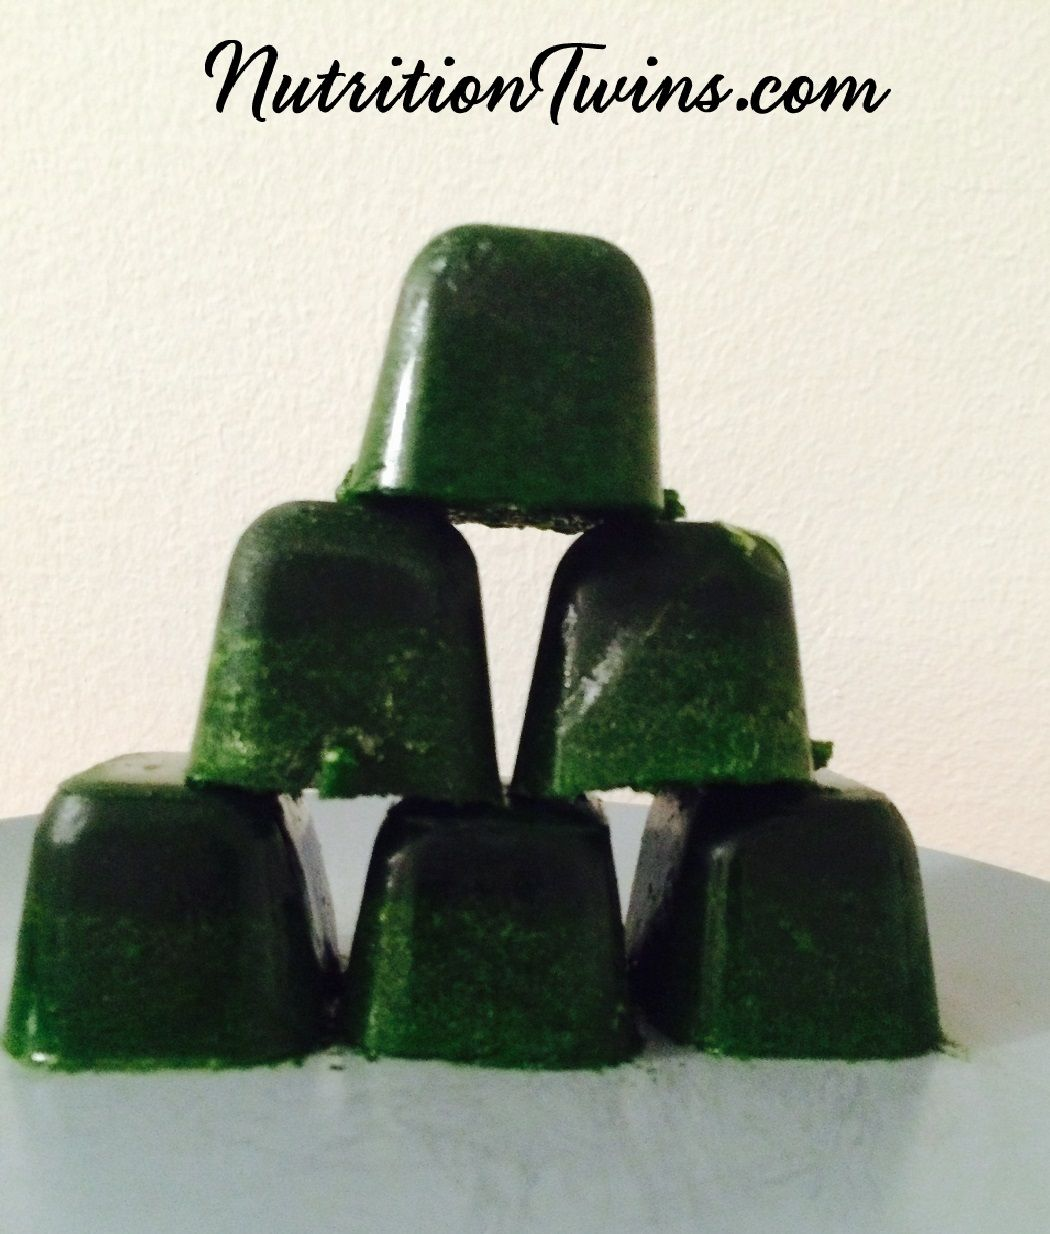 Kale and Spinach Cubes   Easy Way to Get Greens & to Add them to Smoothies   No worry of Veggies Going Bad   Only 20 Calories   @ModernMomOnline